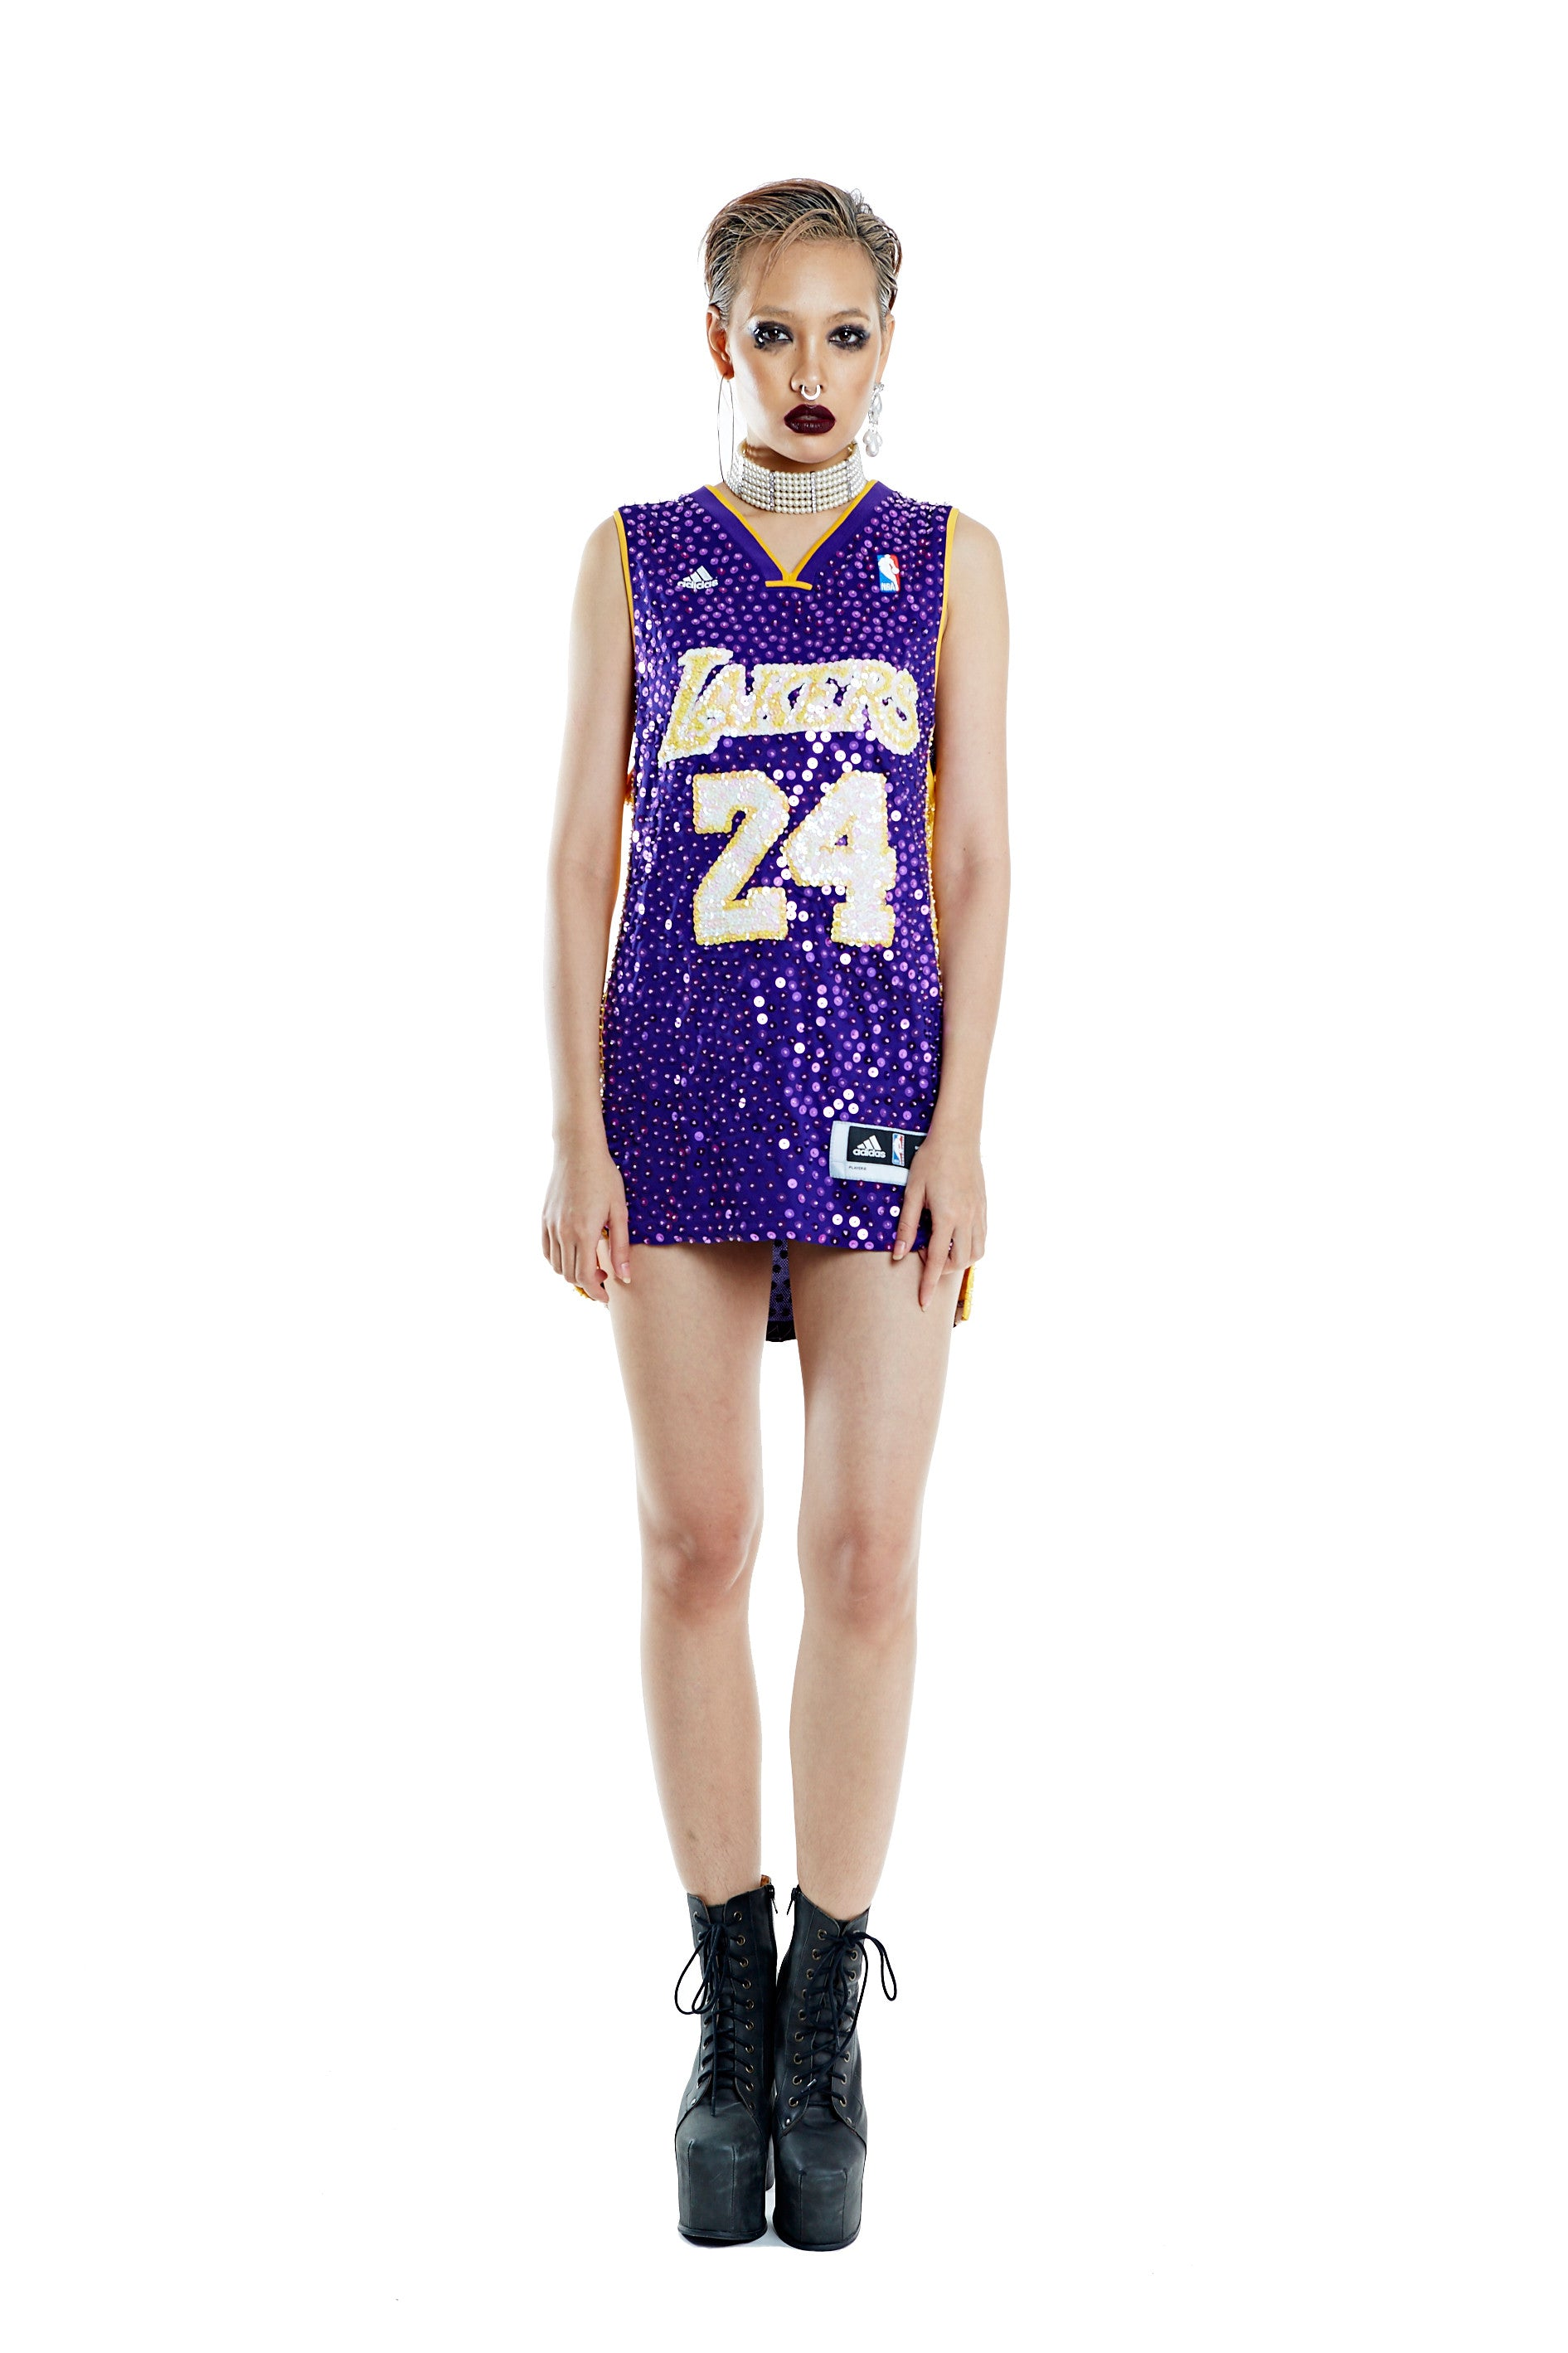 Los Angeles Lakers '24' Bryant Thorn Jersey Mod